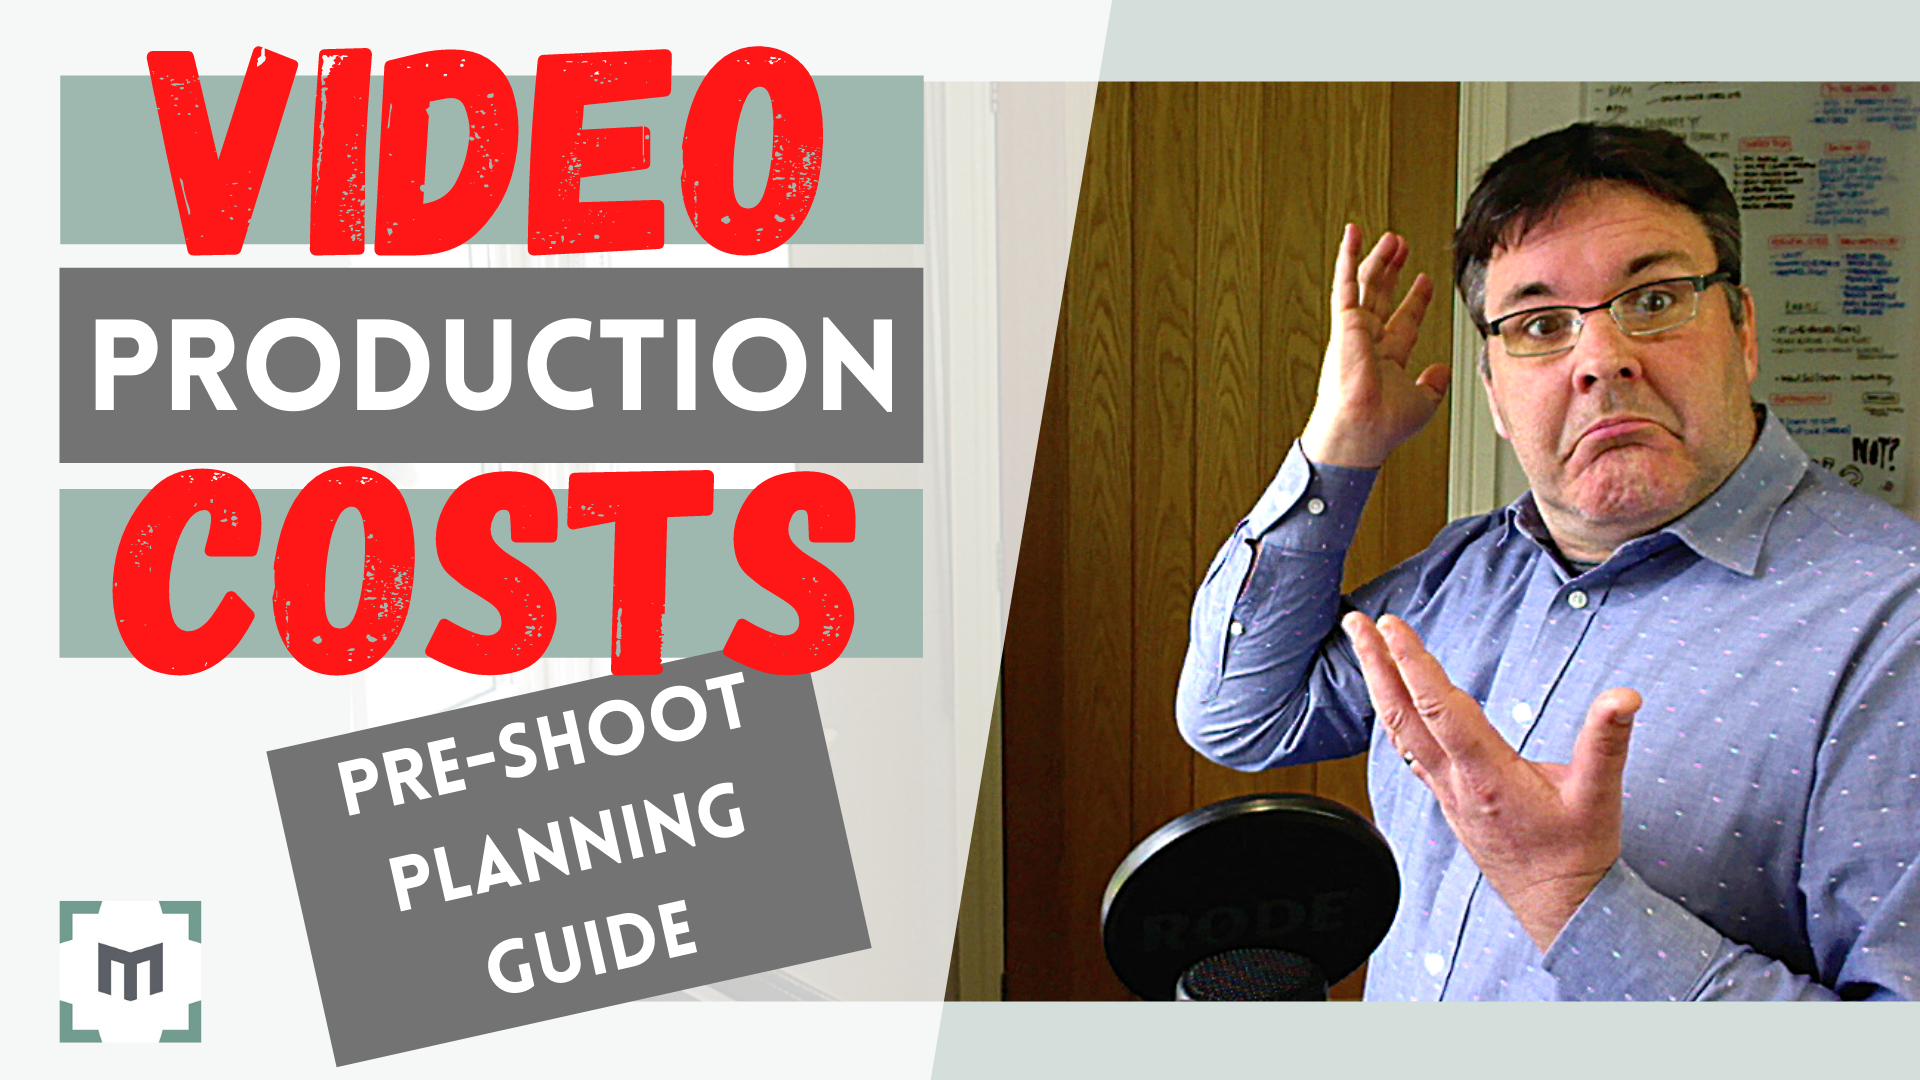 Video Production Costs - Pre-shoot planning guide Video Production Costs UK - Video Marketing Production Cost Guide What are video production costs in the UK? With this video production cost planning guide, we reveal how you can maximise your shoot efficiency to get the most out of your video marketing production budget.